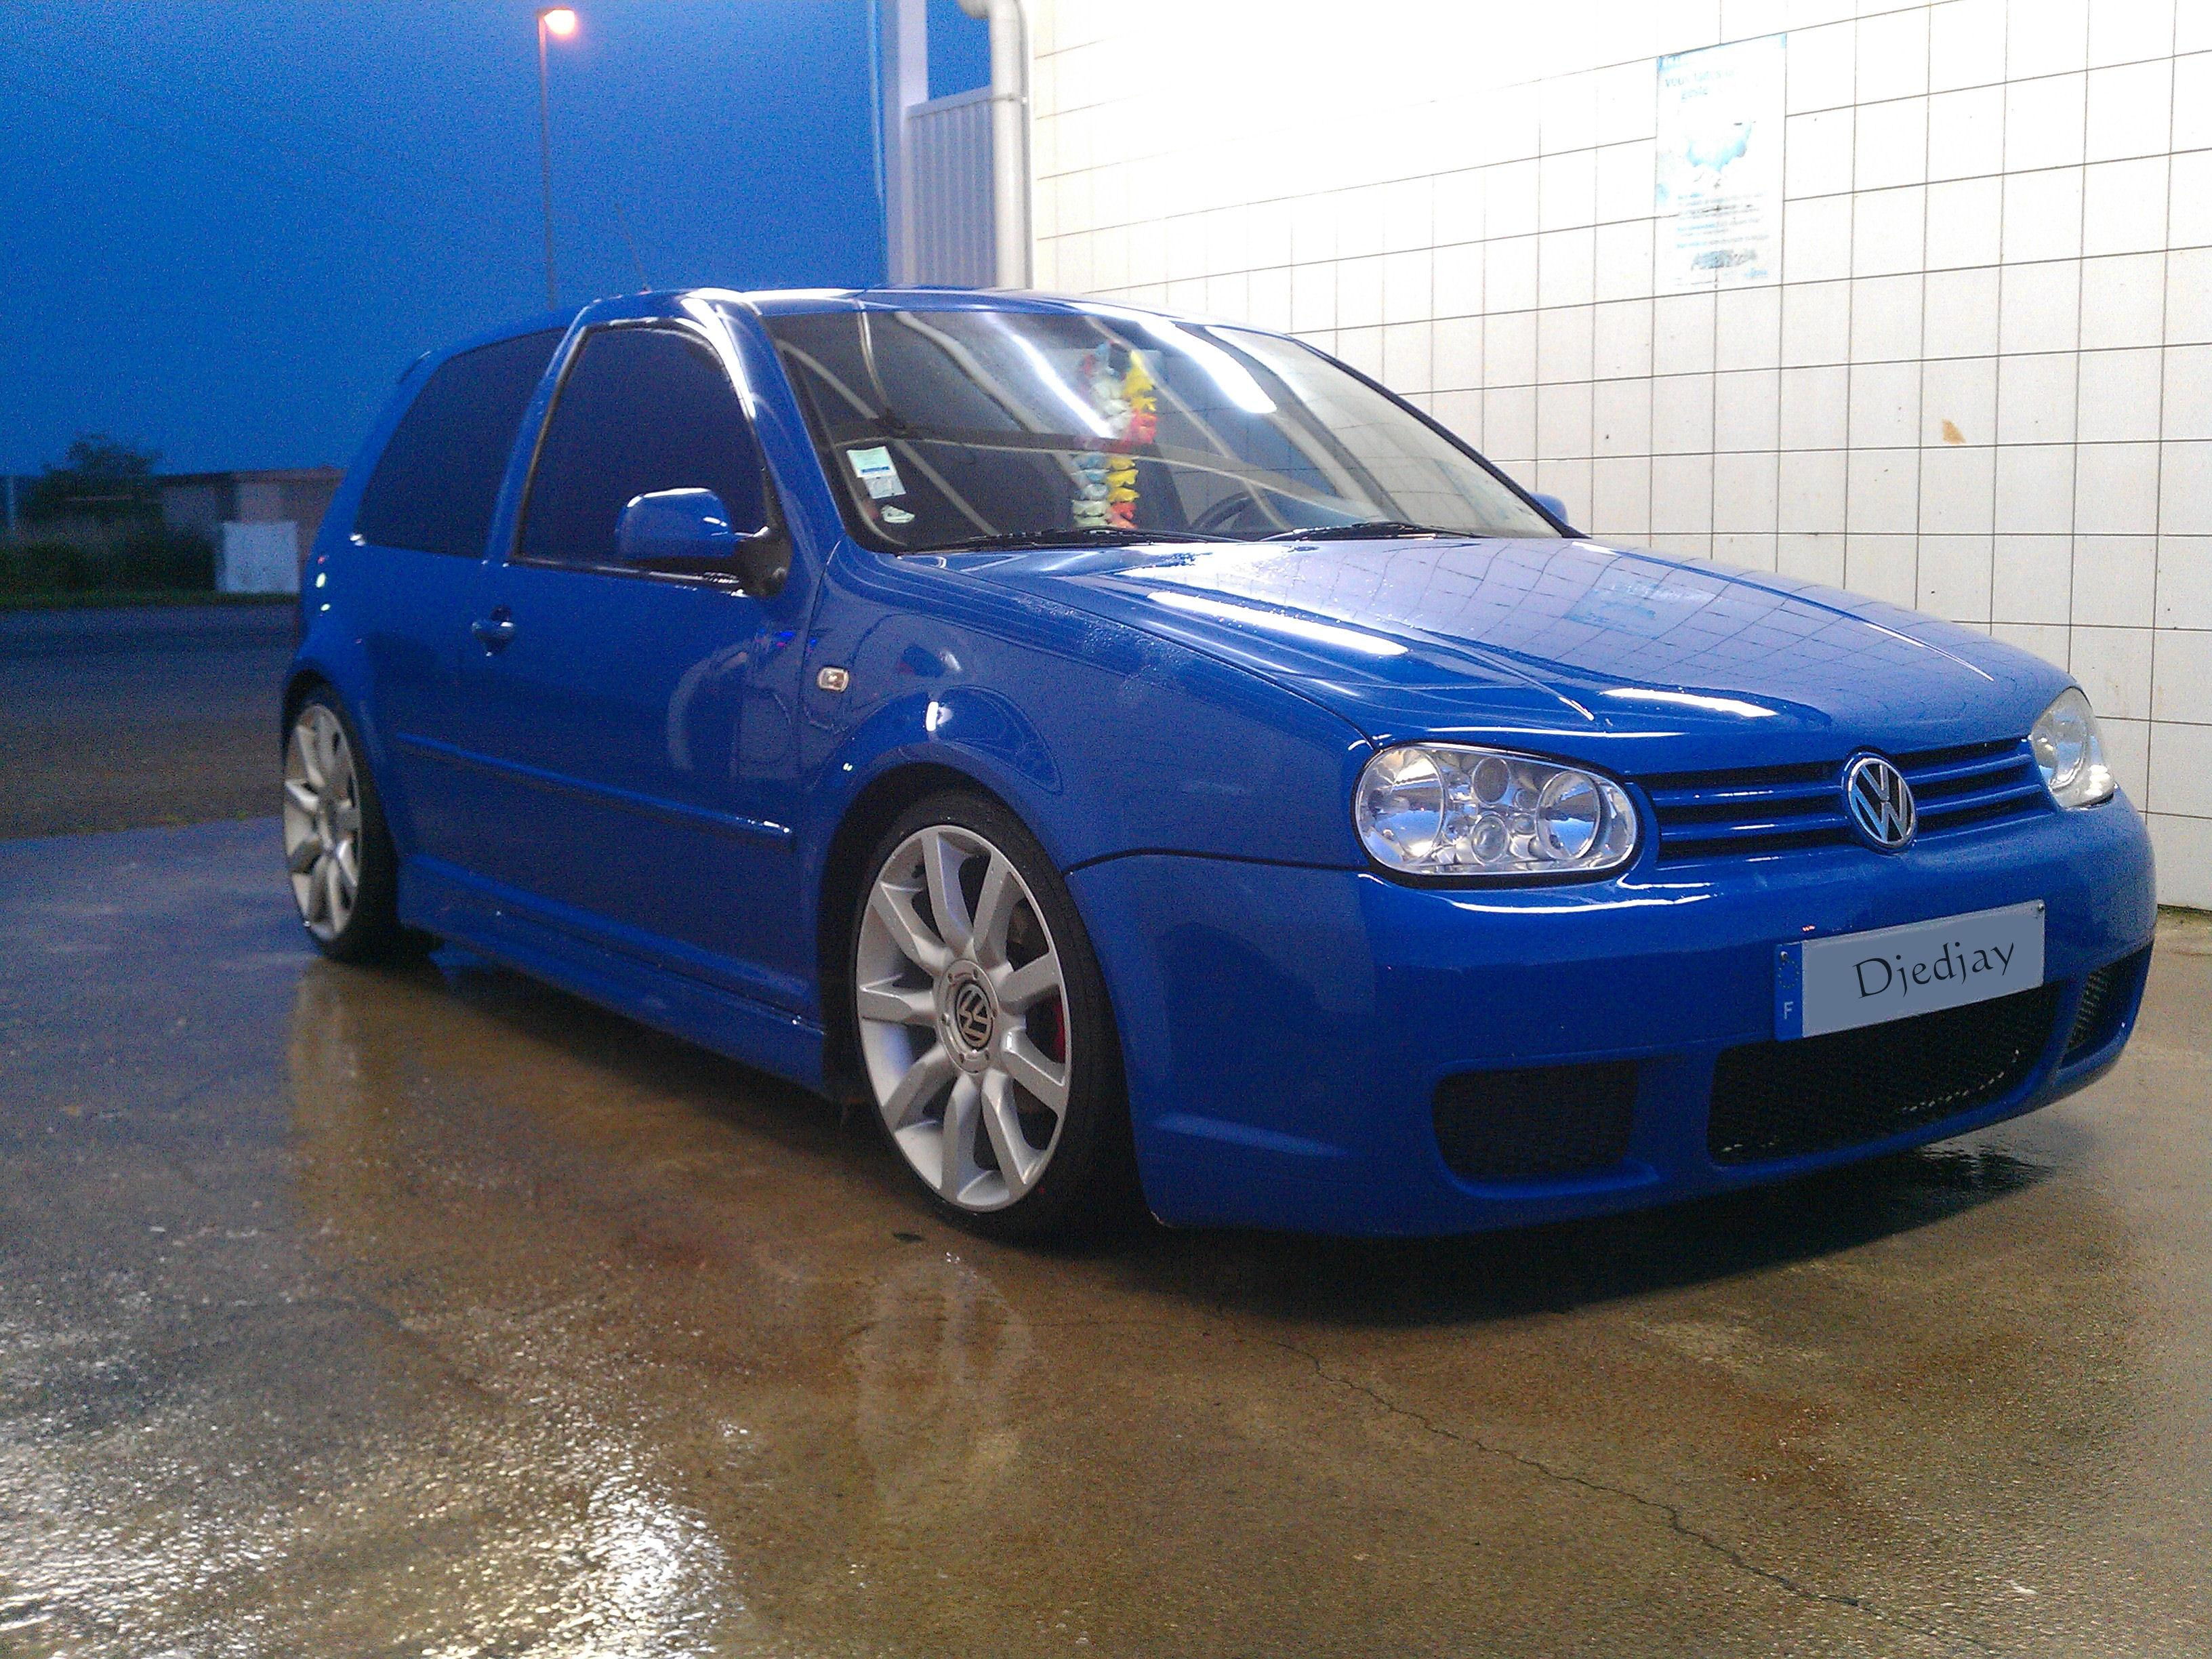 golf iv bleu nogaro retour stock garage des golf iv tdi 110 page 4 forum volkswagen. Black Bedroom Furniture Sets. Home Design Ideas